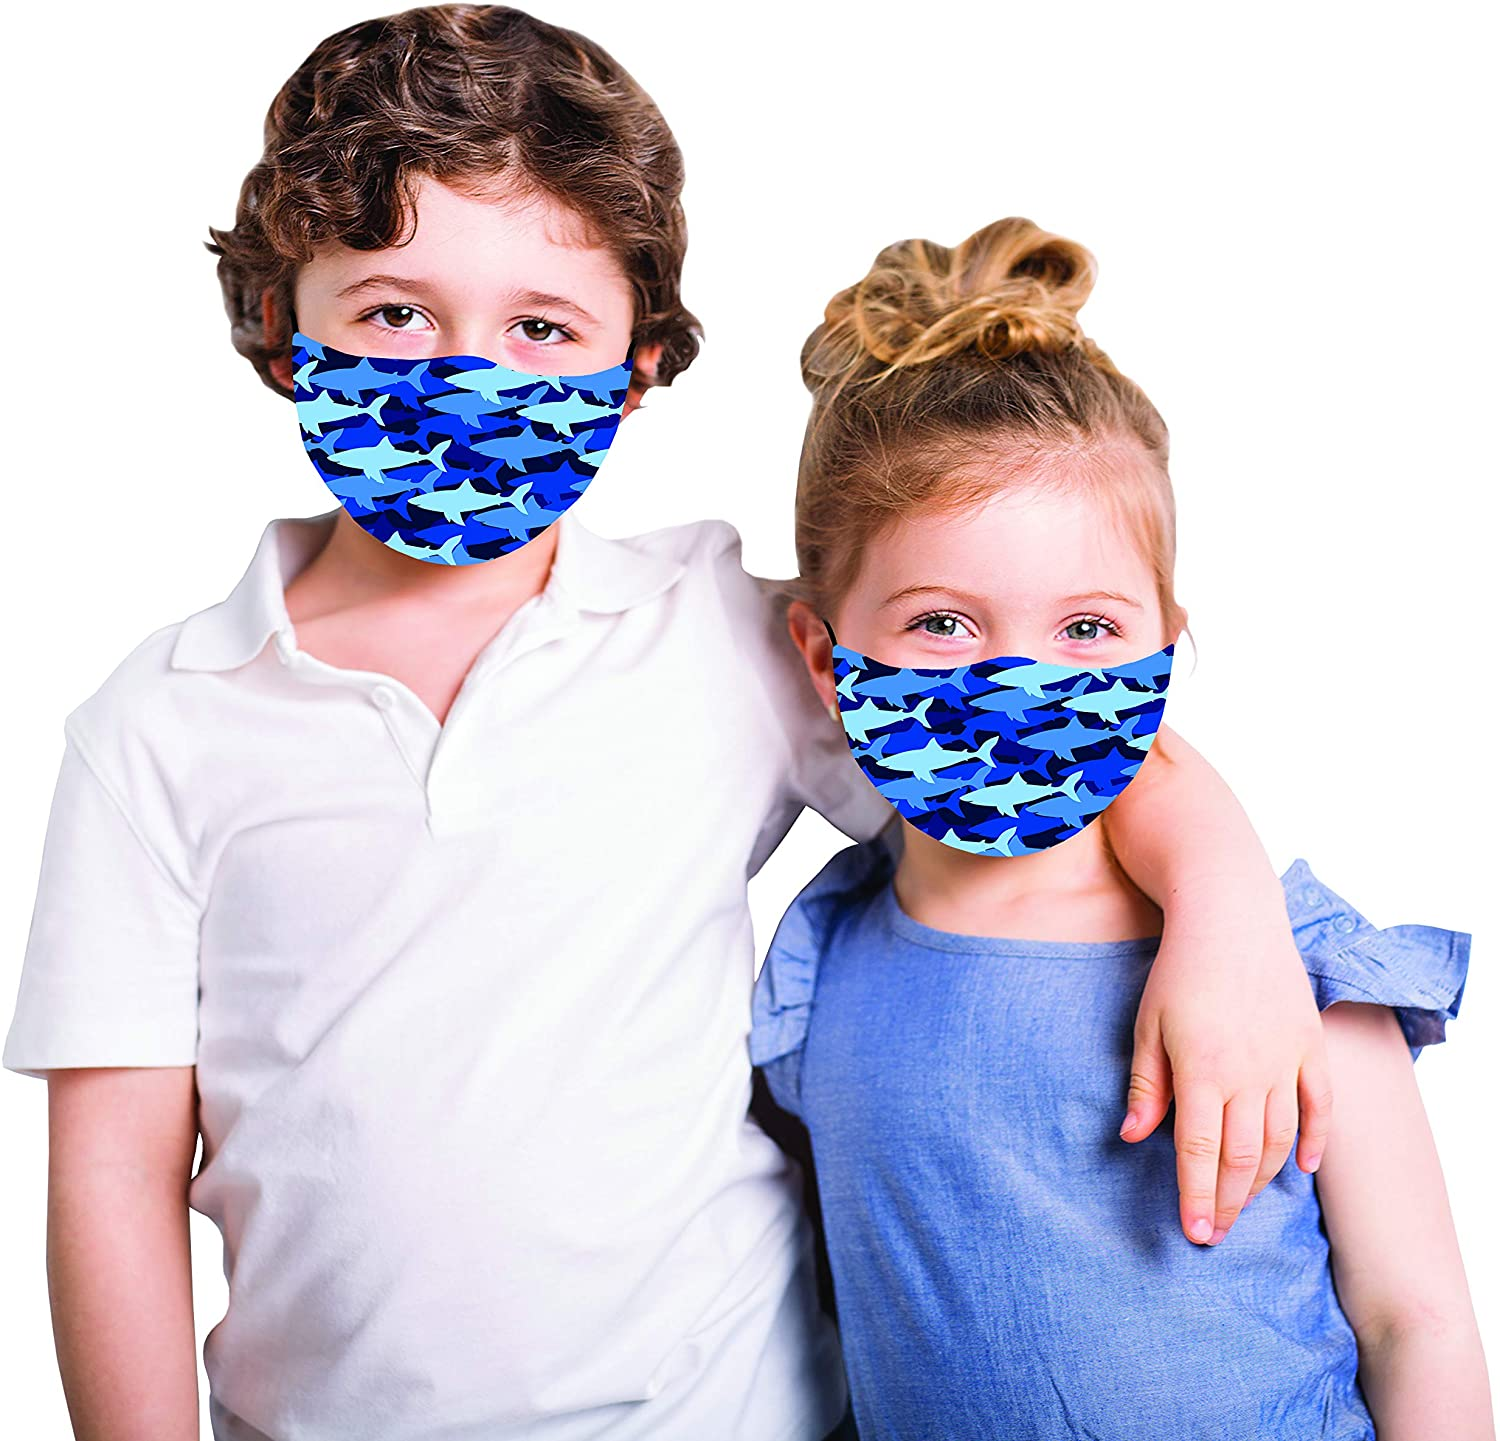 Snoozies Kids Face Mask - 1 Cloth Face Mask for Kids with Filter Pocket + 4 Filters - Washable Reusable Face Mask - Ear Loops Made for Parents to Tie to Fit - Shark - Ages 2-4